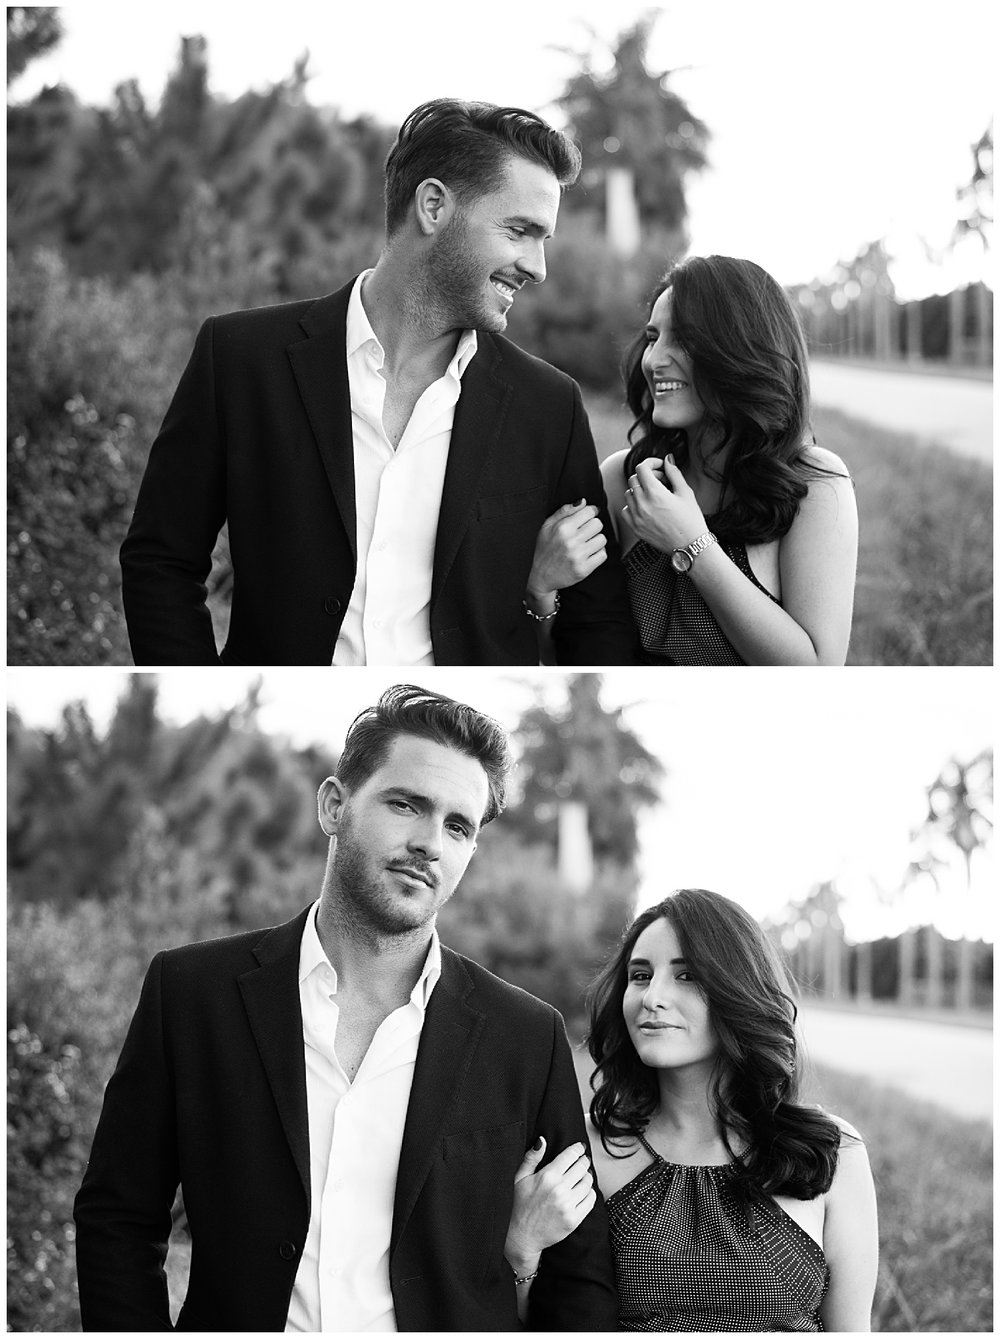 black and white Couples portrait session in Redland Florida